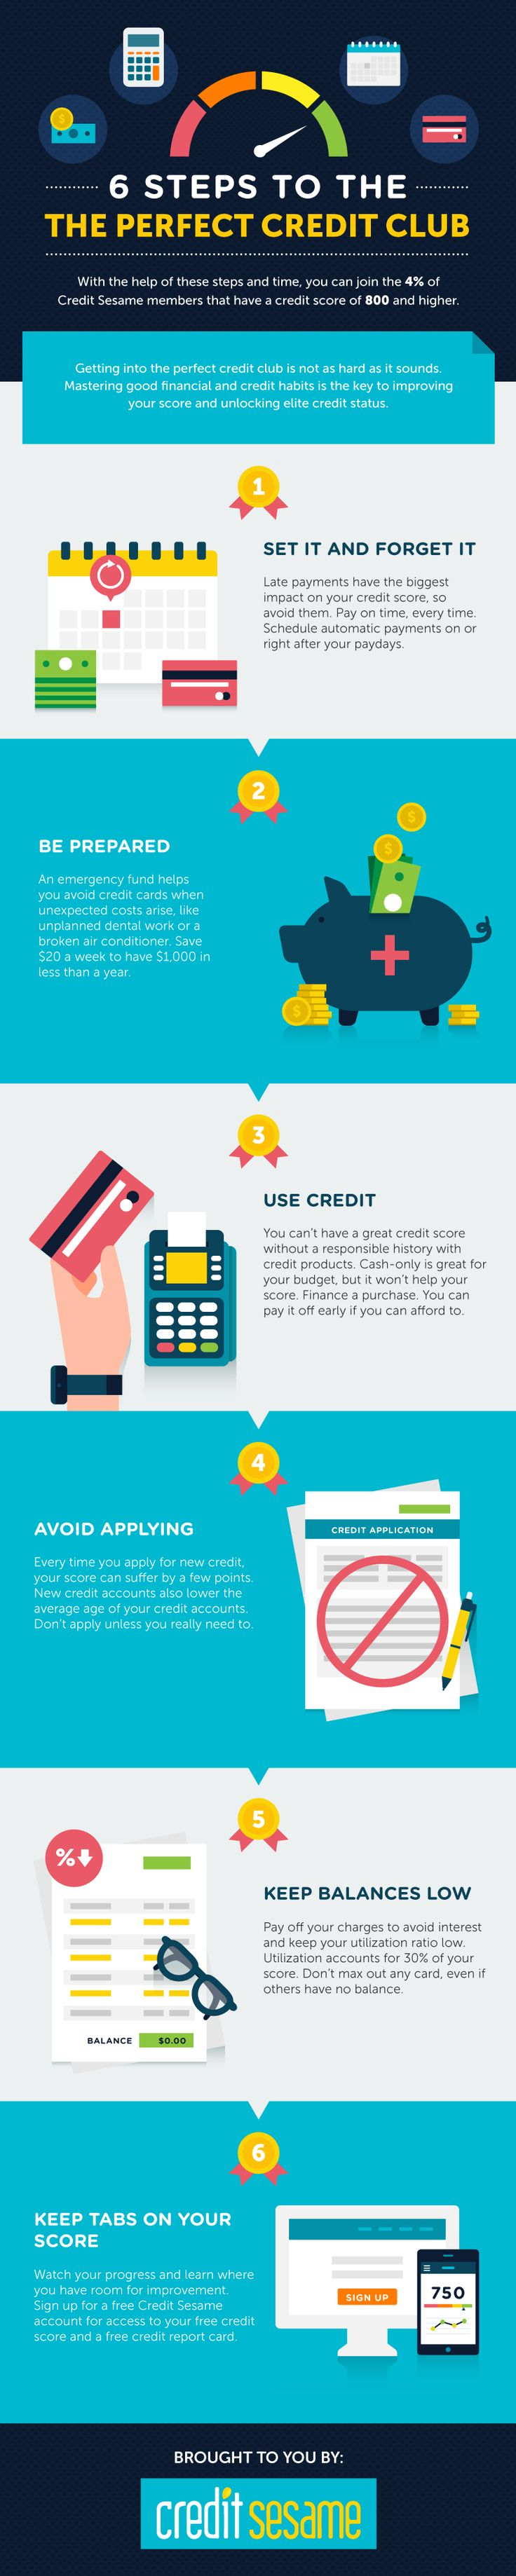 6 Steps to The Perfect Credit Club